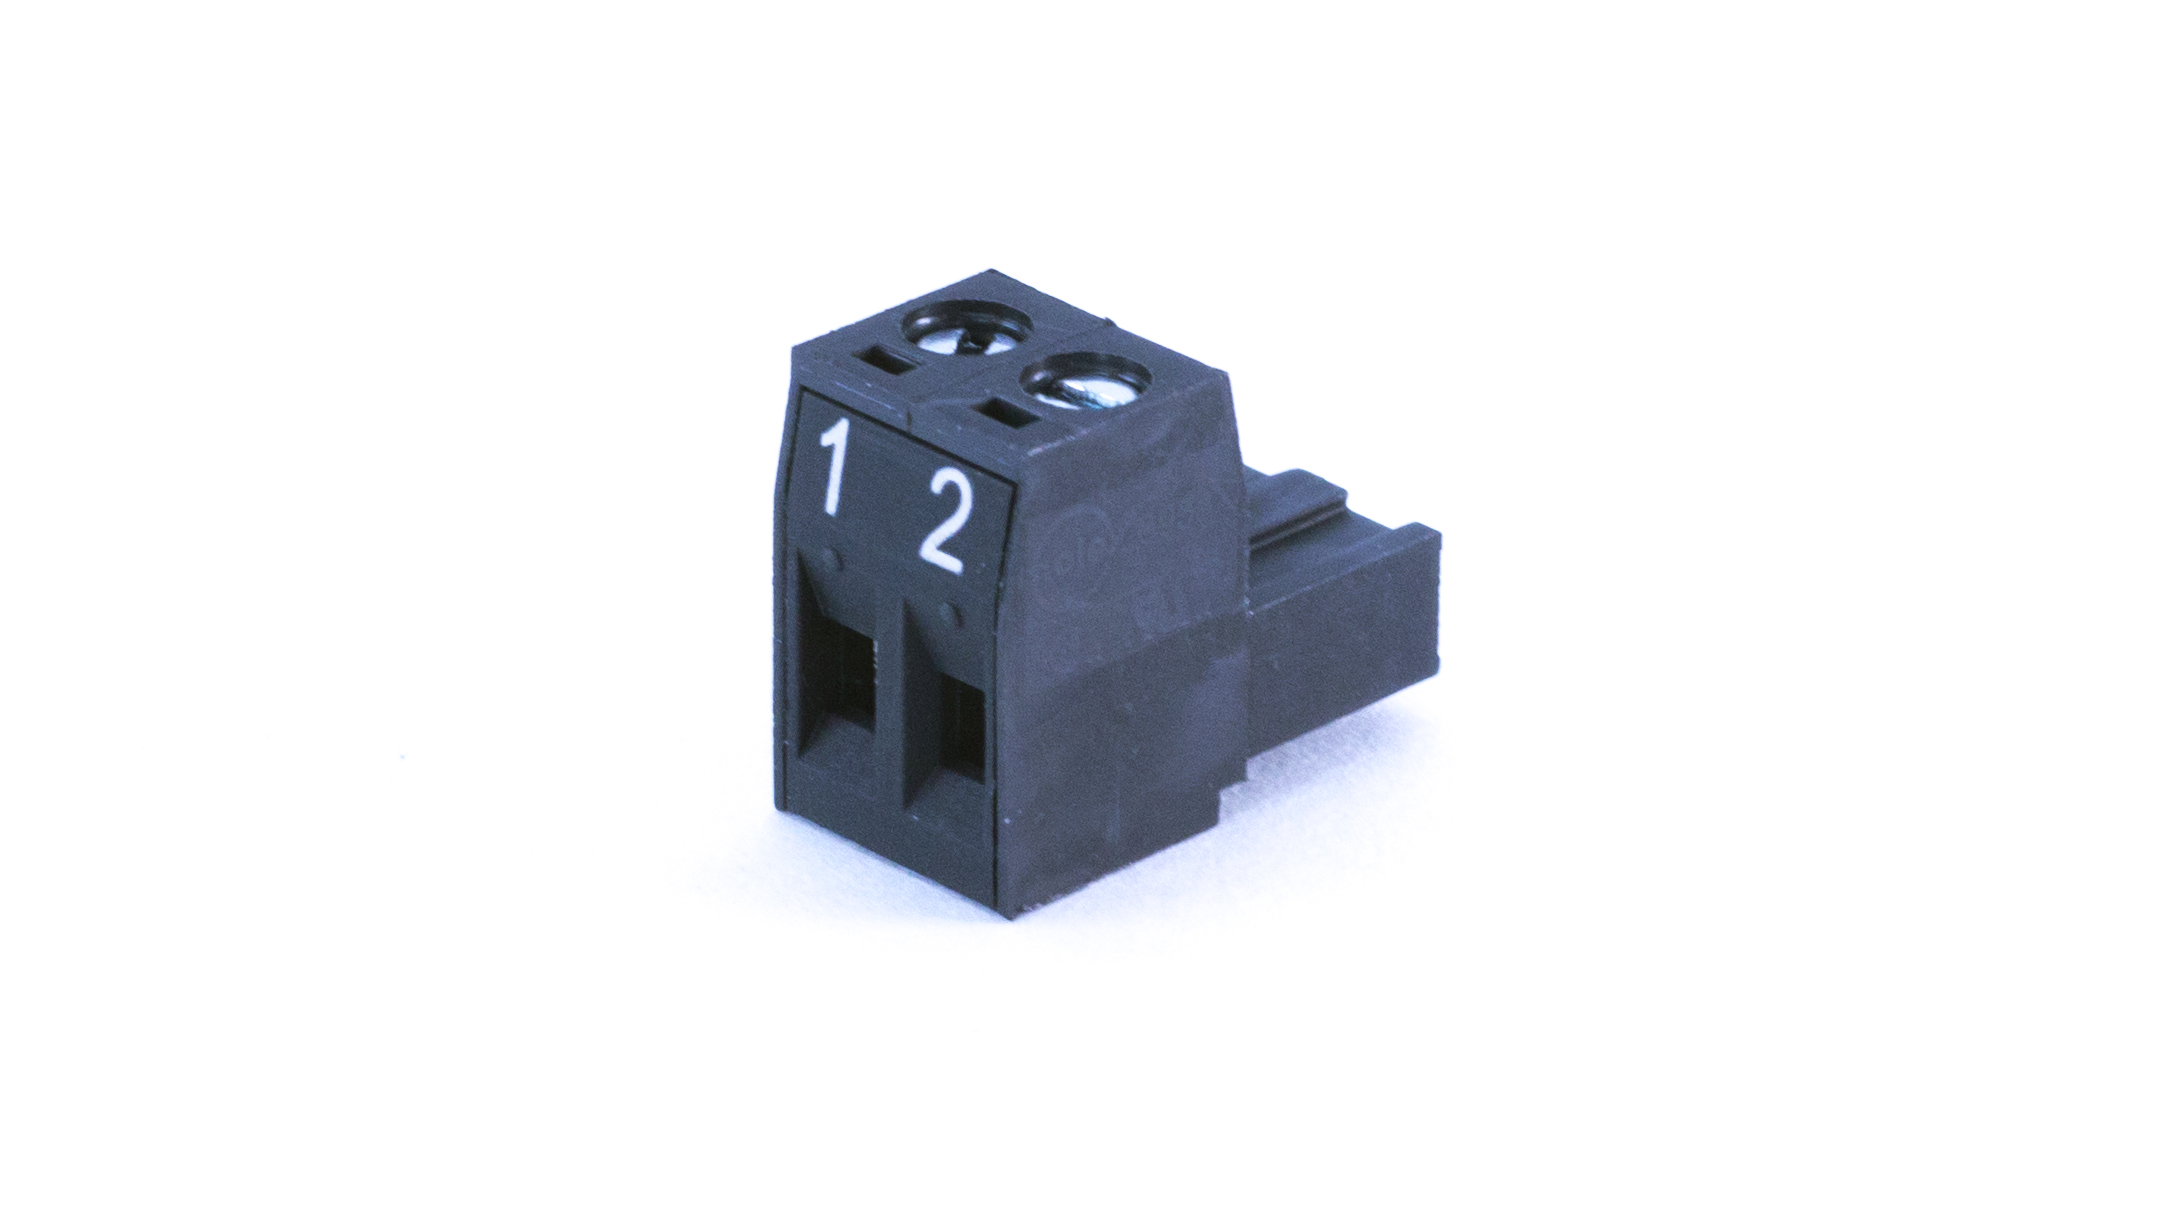 2 position terminal block for lulzbot 2